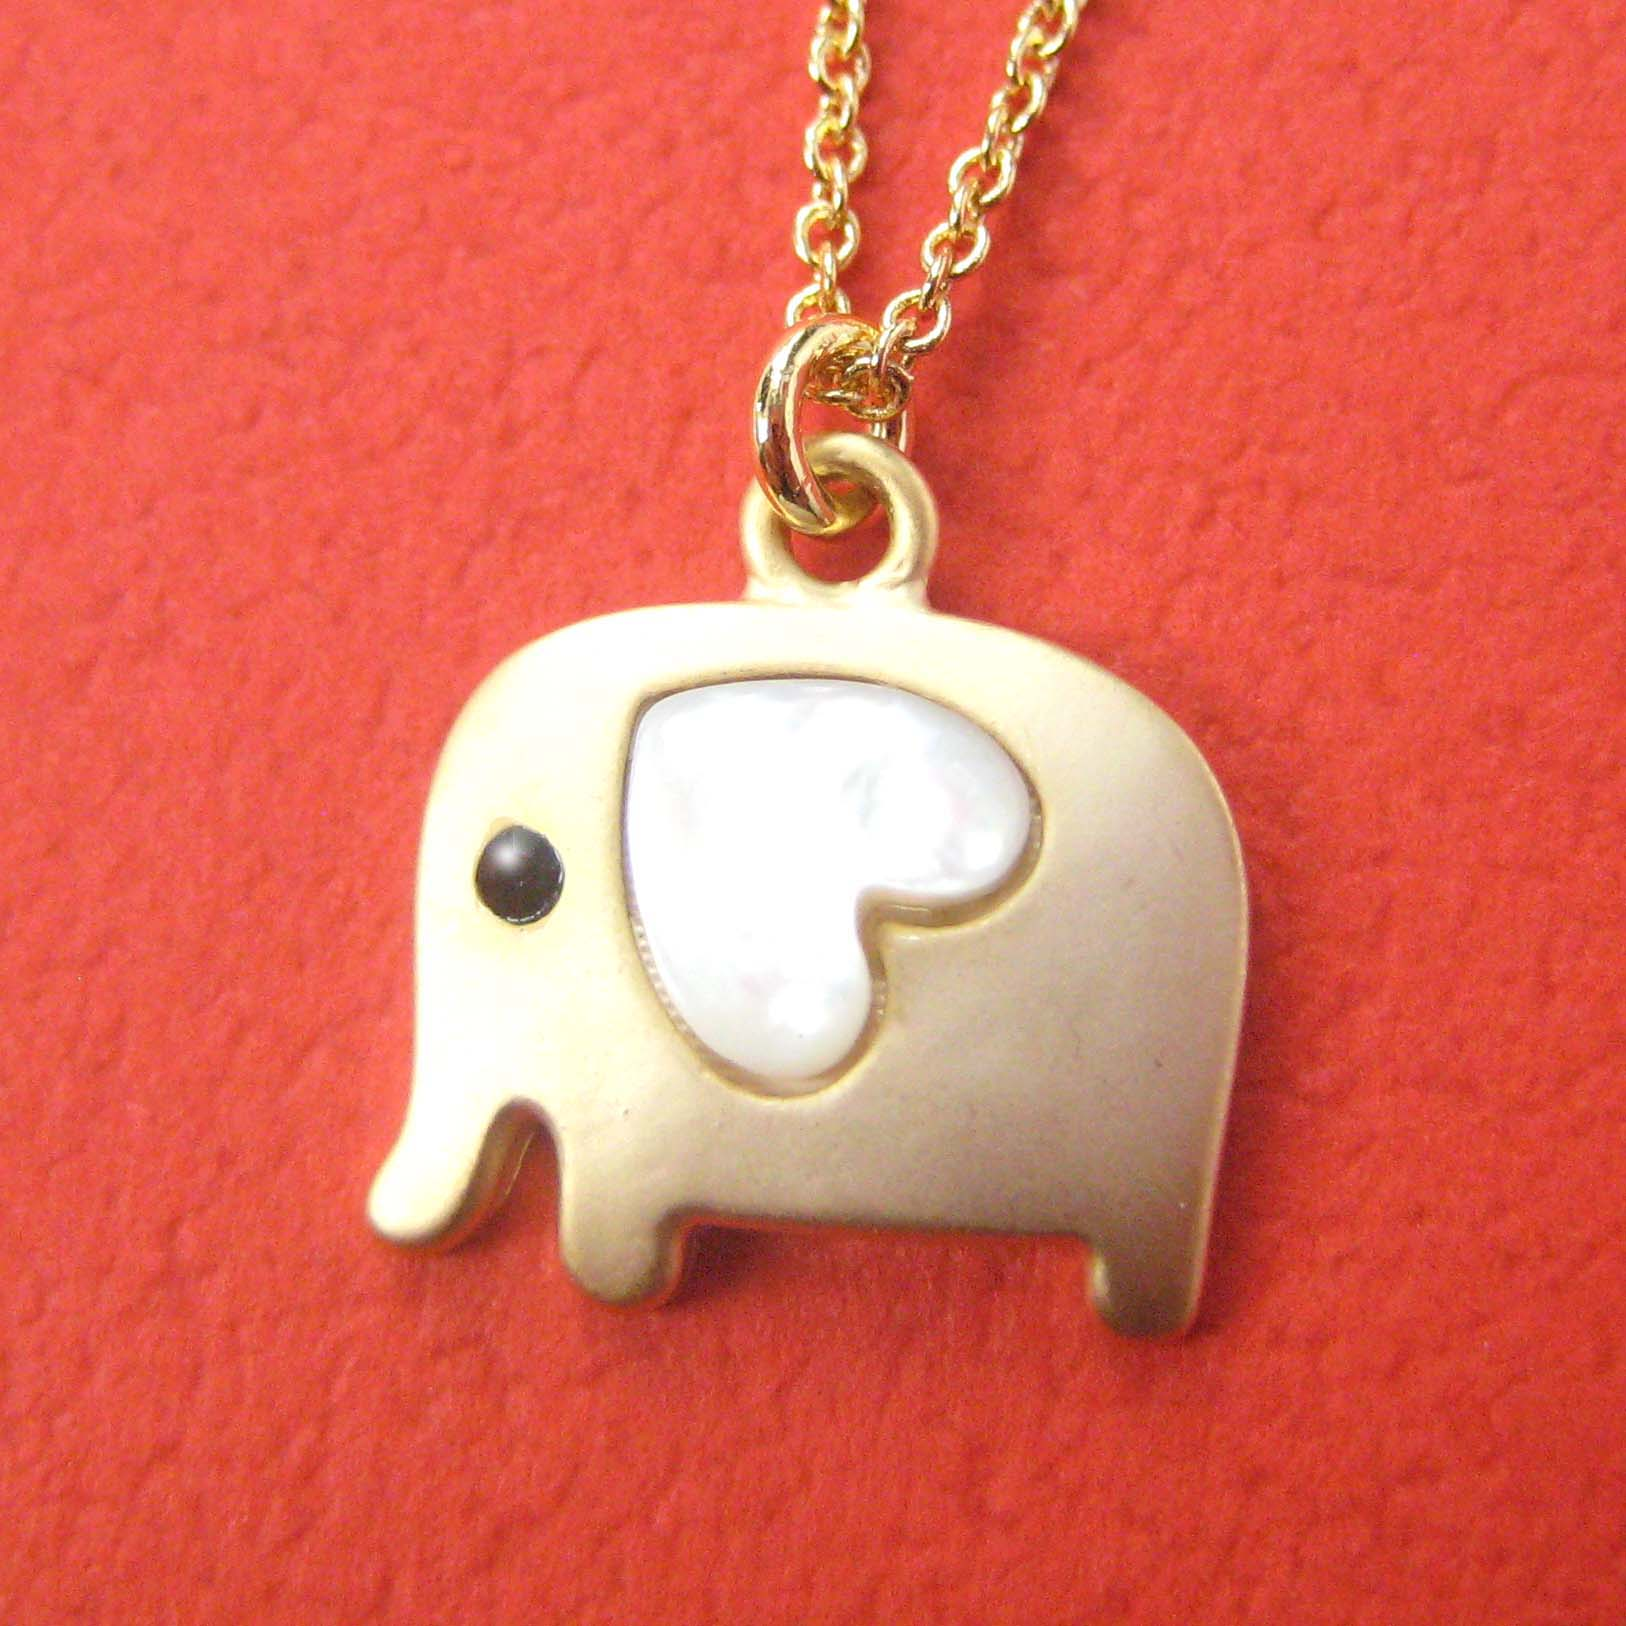 Small elephant animal necklace in gold with heart allergy free small elephant animal necklace in gold with heart allergy free thumbnail 1 aloadofball Images